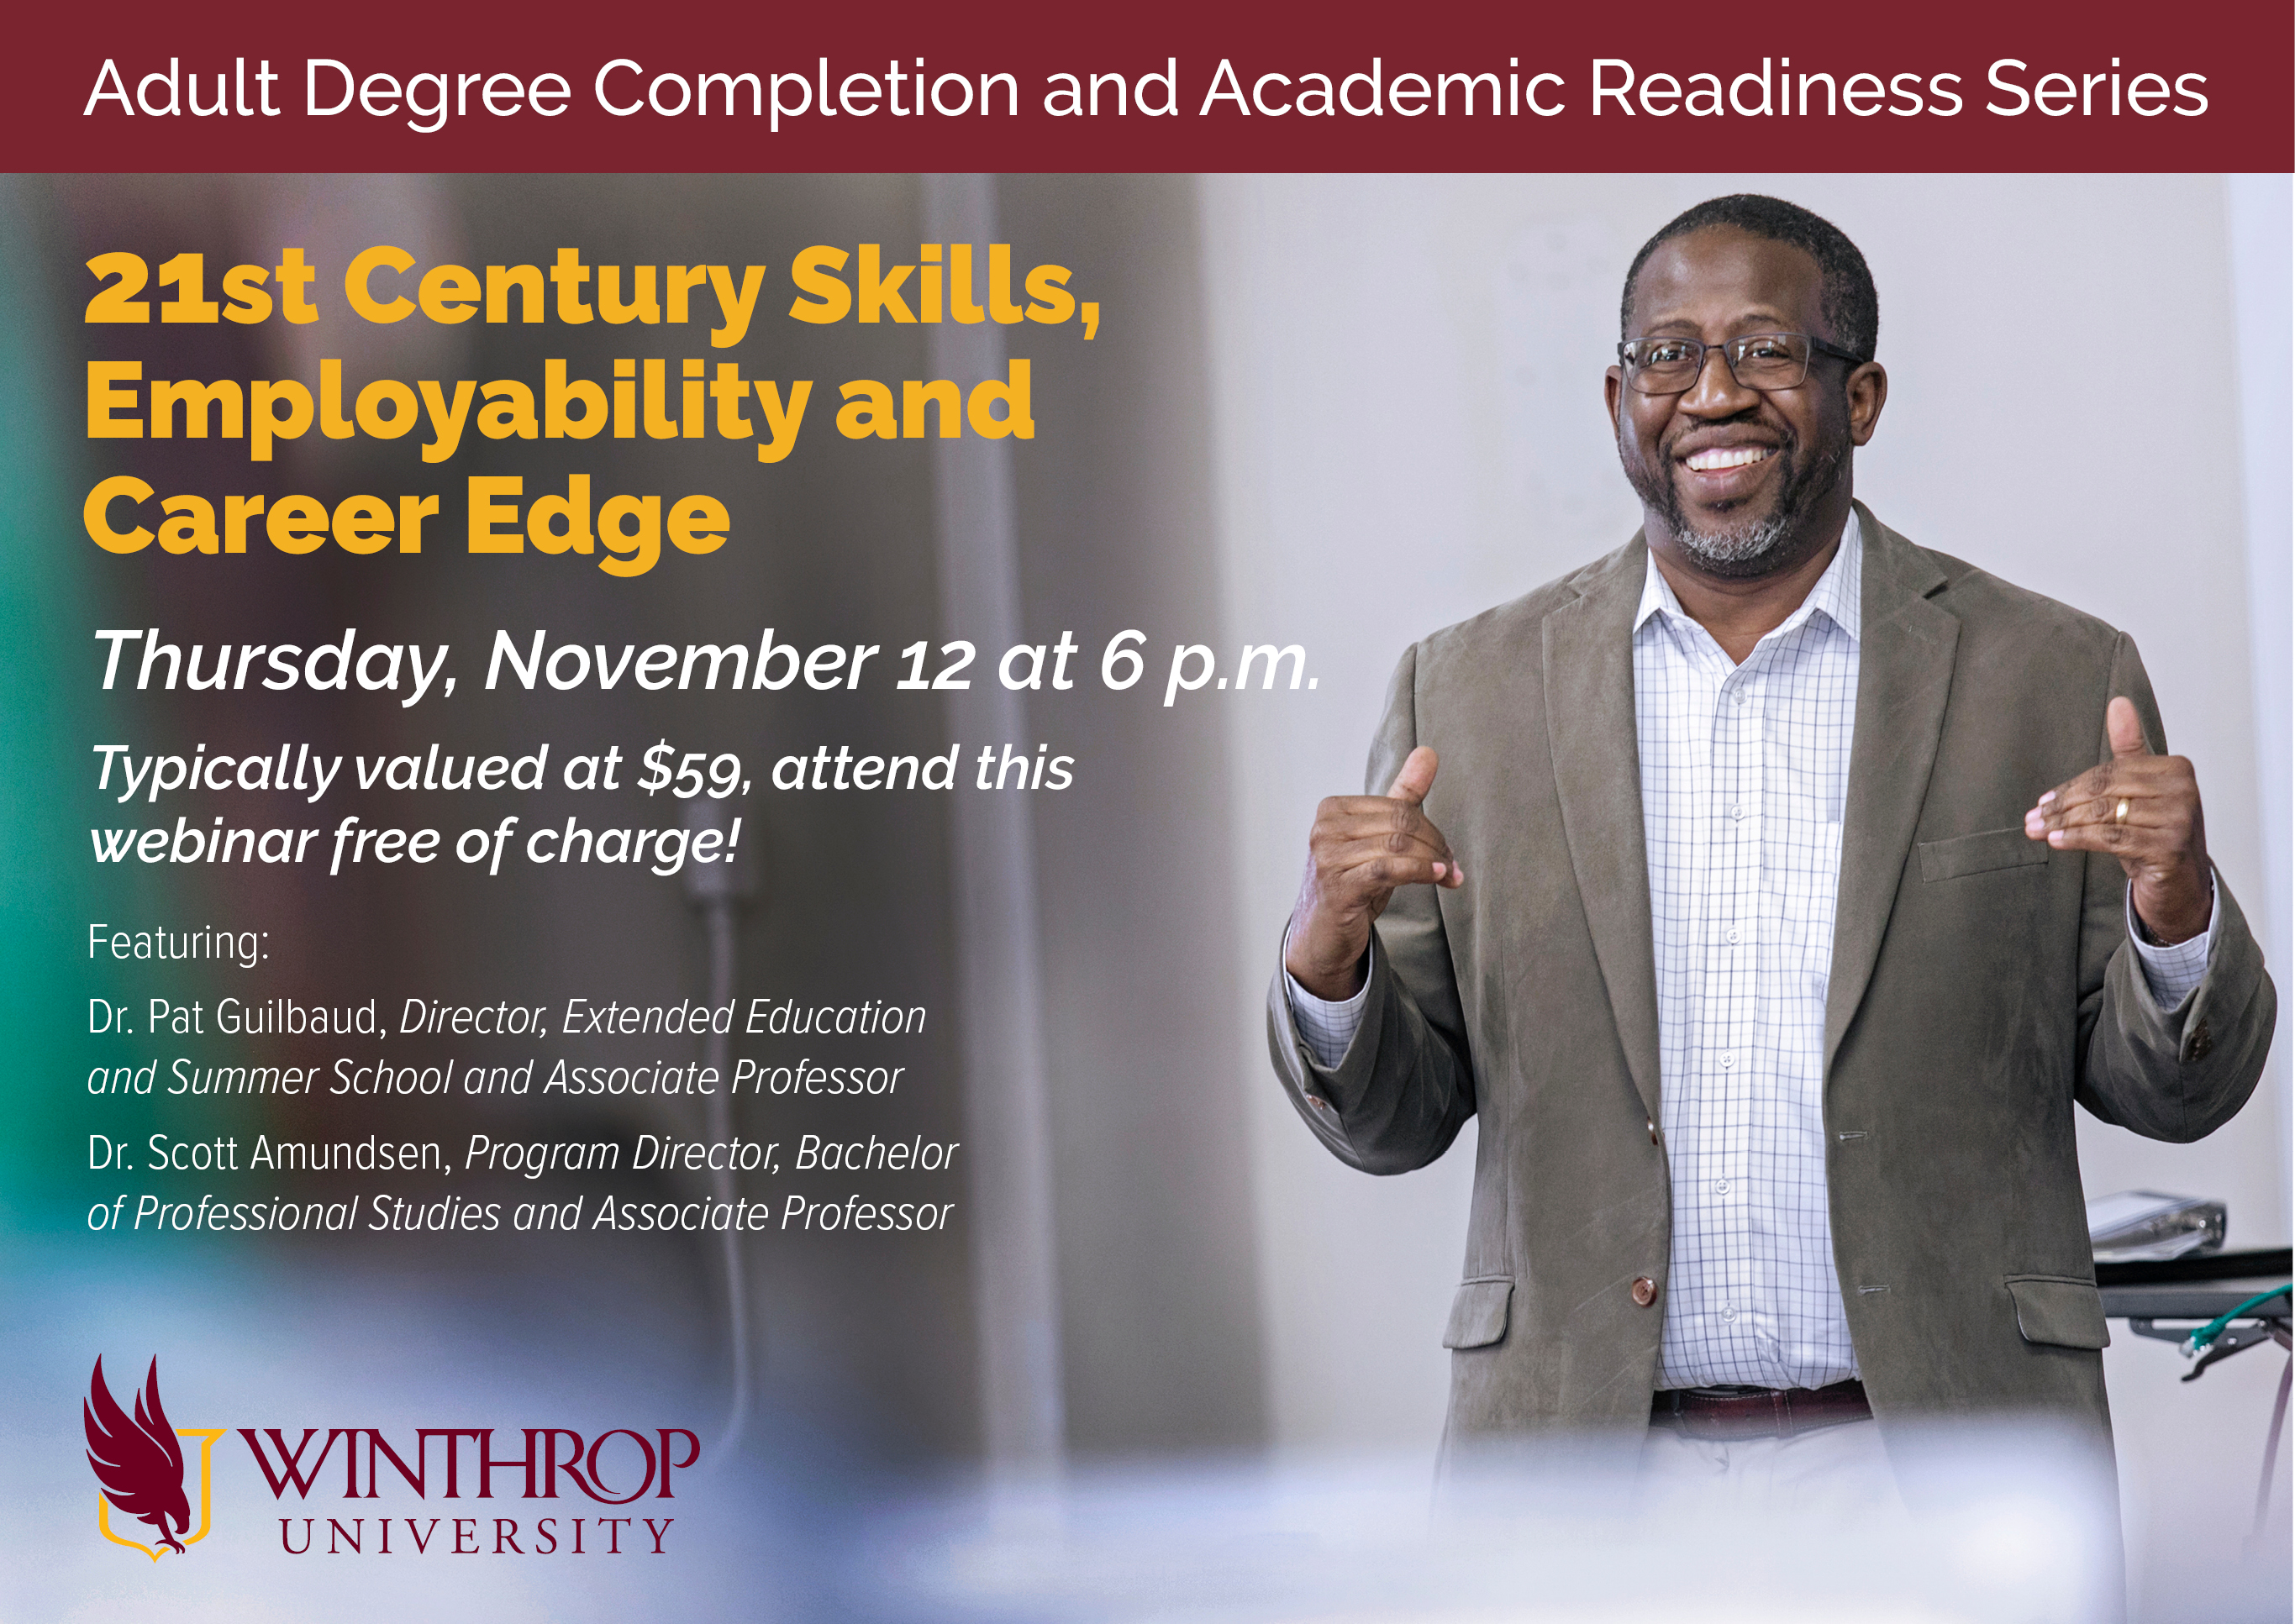 Adult Degree Completion And Academic Readiness Series: 21st Century Skills, Employability,                         and  Career Edge